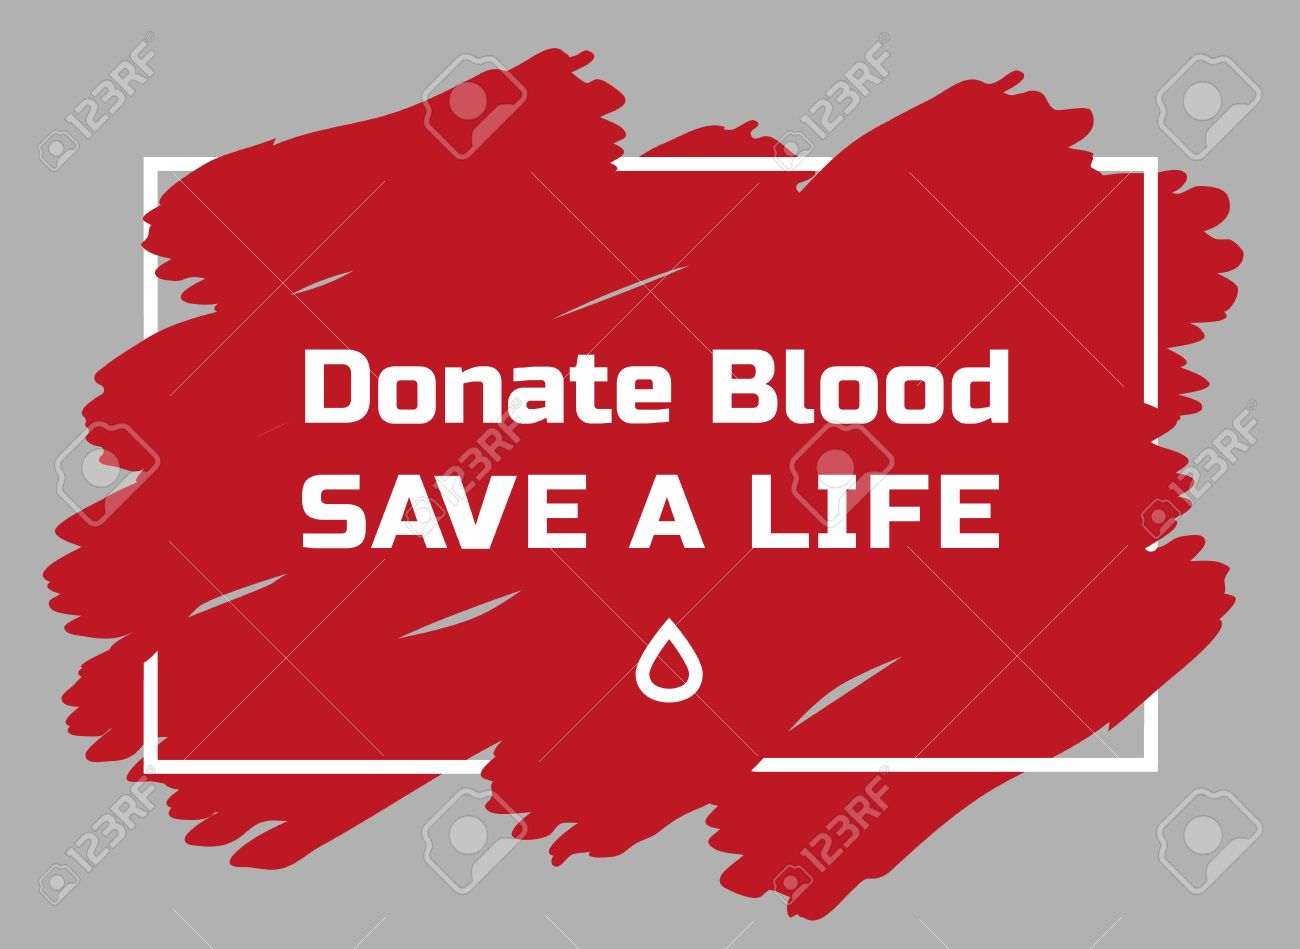 Poster design on blood donation - Donate Blood Design Creative Donor Poster Blood Donation Medical Poster World Blood Donor